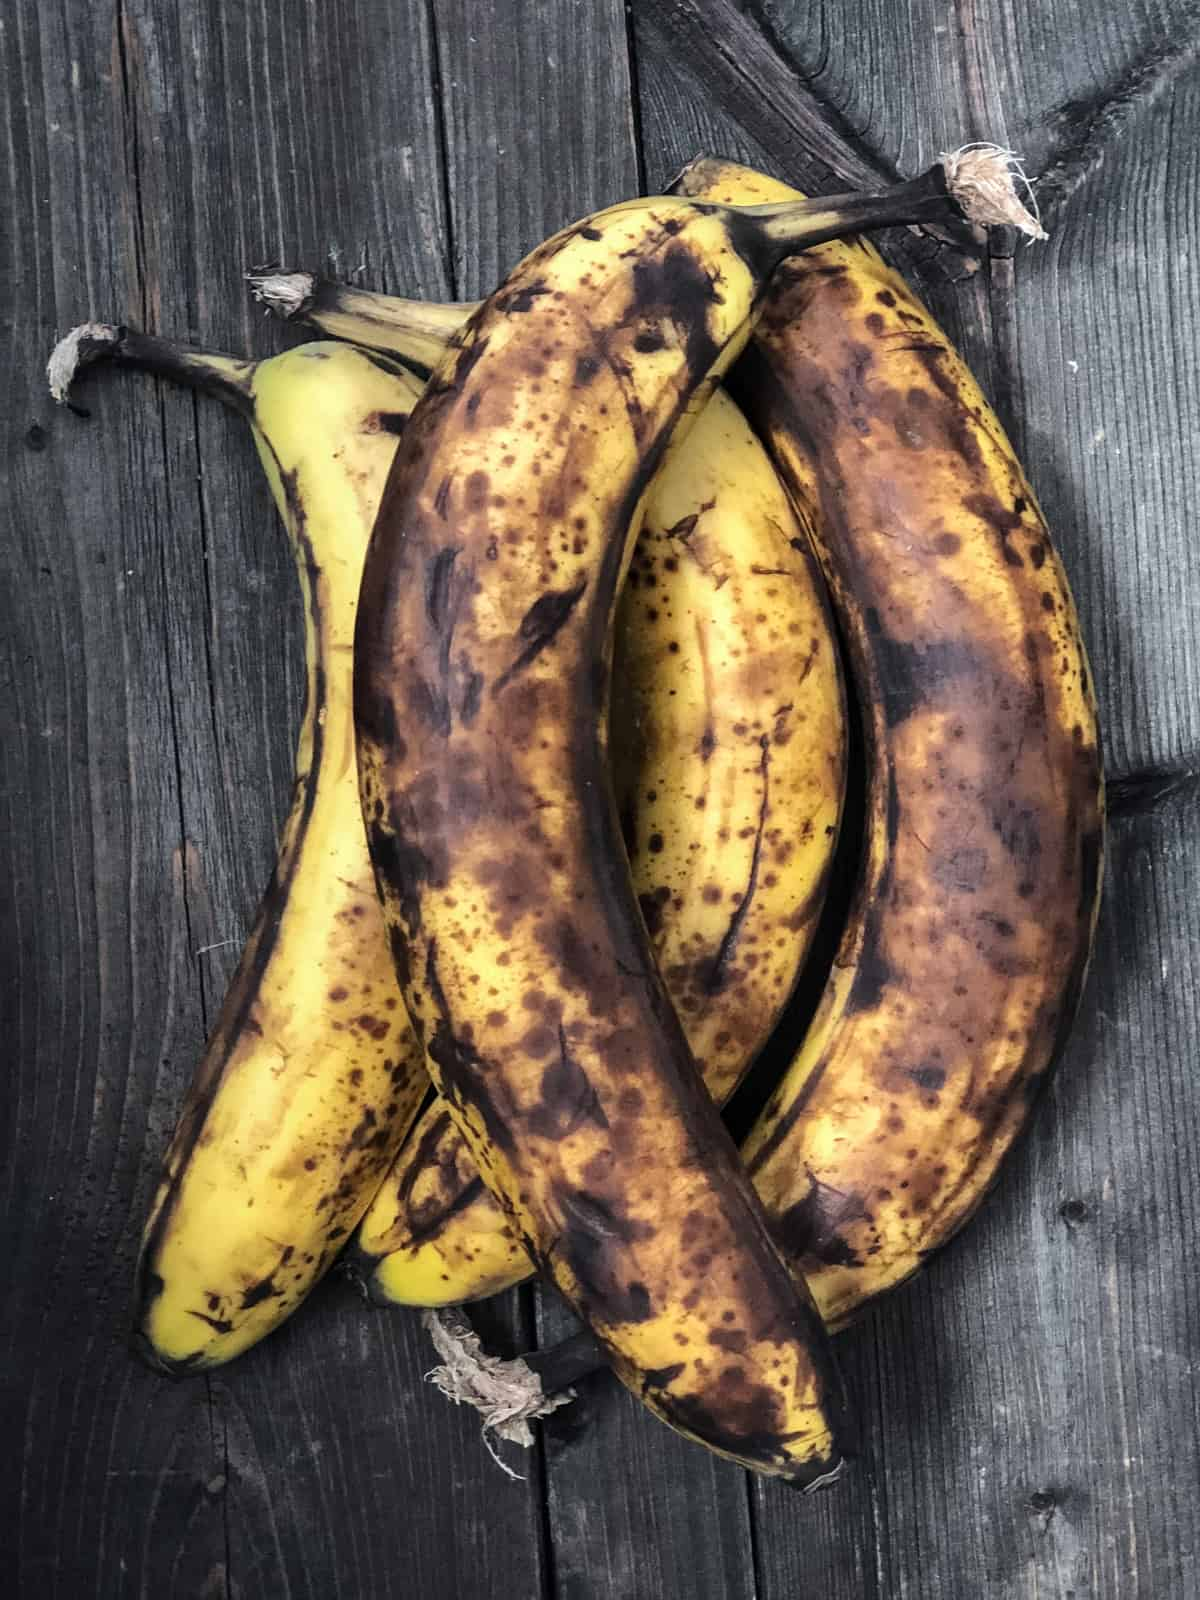 Bunch of spotty bananas for banana nut muffins.